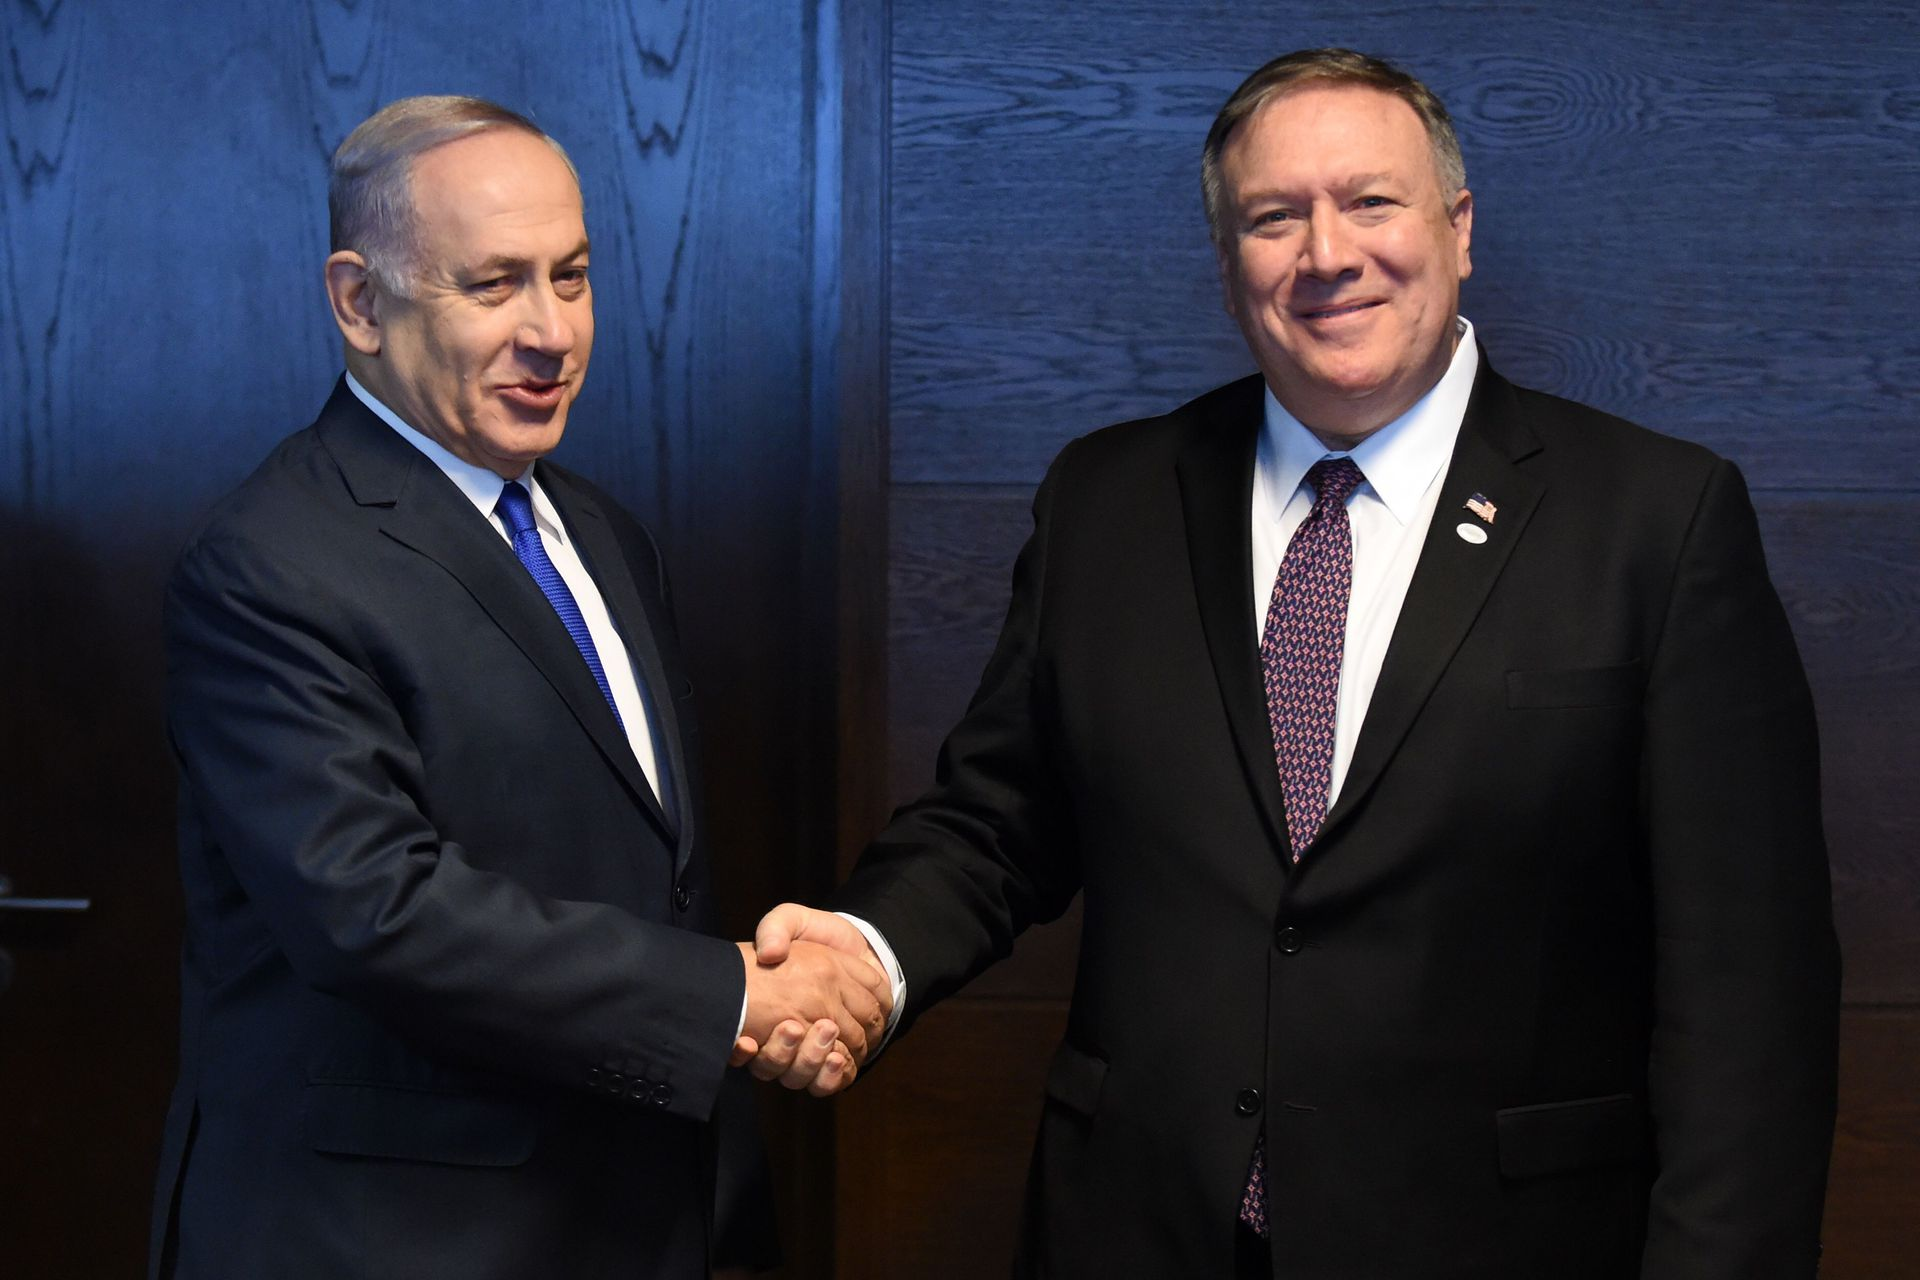 Pompeo announces U.S. will no longer view Israeli settlements as illegal